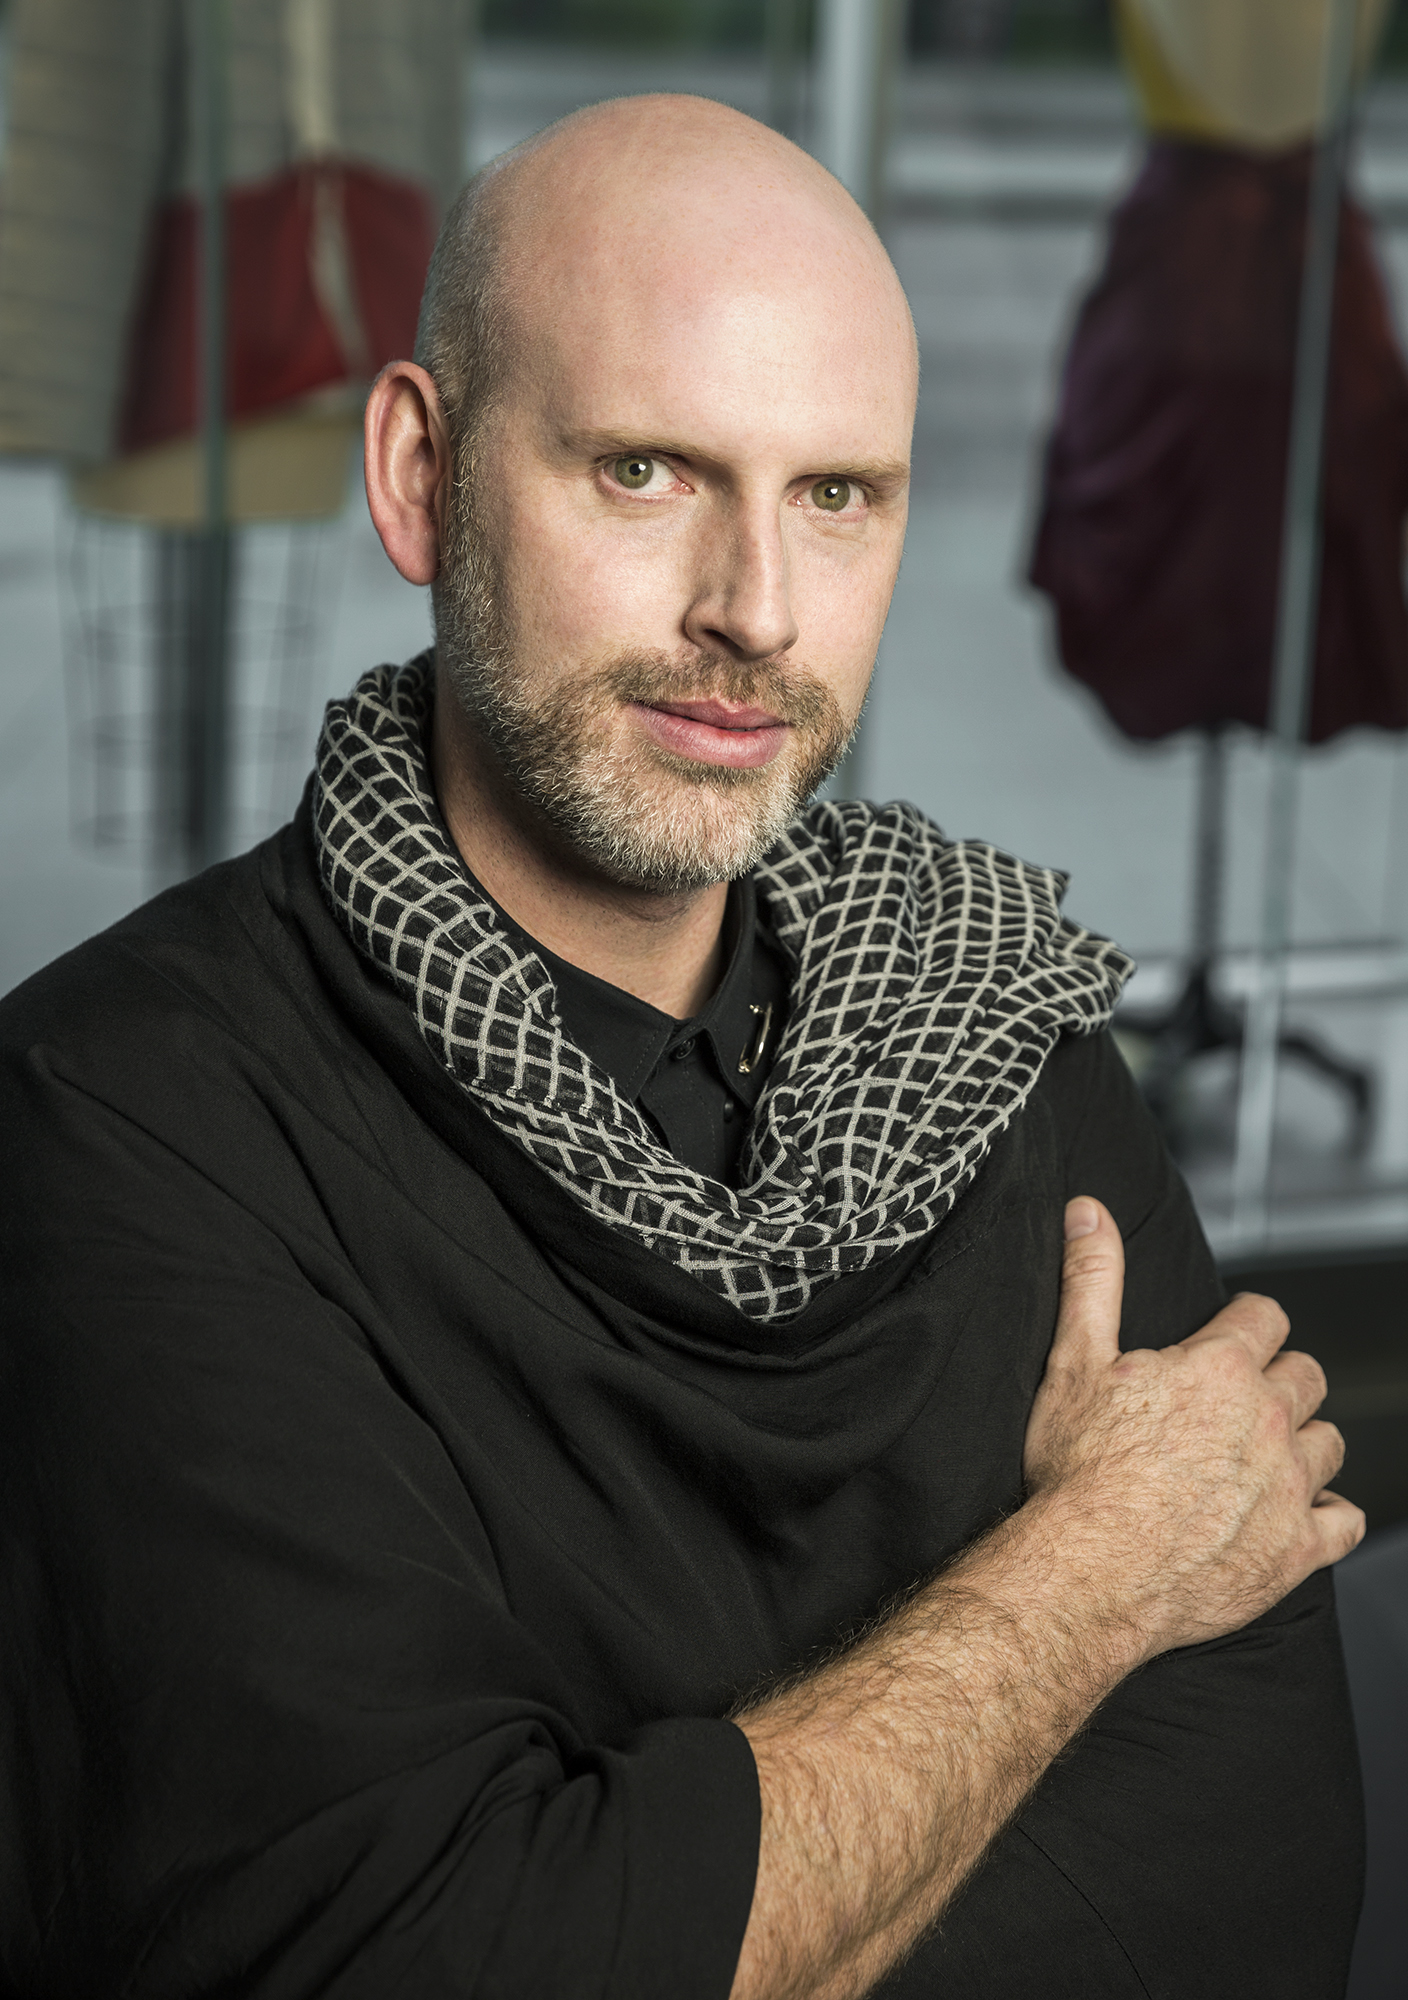 JUSTIN LeBLANC - FASHION STUDIESJustin LeBlanc is an Associate Professor of Fashion Studies at Columbia College Chicago where he teaches fashion design and installation. LeBlanc's interdisciplinary career spans fashion, textile art, architecture, and technology.LeBlanc aims to push education forward by combining the strengths of emerging technology like 3D printing with the traditions of the hand. His work focuses on knowledge passed down through artists and cultures from which our understandings are based. This knowledge and experience in multiple disciplines allows him to exploit and fuse different approaches, resulting in artistic expression that cannot be conveyed by one discipline alone.LeBlanc has been featured in a number of publications, fashion shows, and television in the United States and internationally. These include Mercedes New York Fashion Week, Marie Claire, Red Eye, The Chicago Tribune, the New York Times, USA Today, and The Face Magazine. He has competed on Project Runway and Project Runway All Stars. LeBlanc's Undergraduate degree is in Architecture from North Carolina State University, and his Master's Degree is in Fashion Design from School of the Art Institute of Chicago.